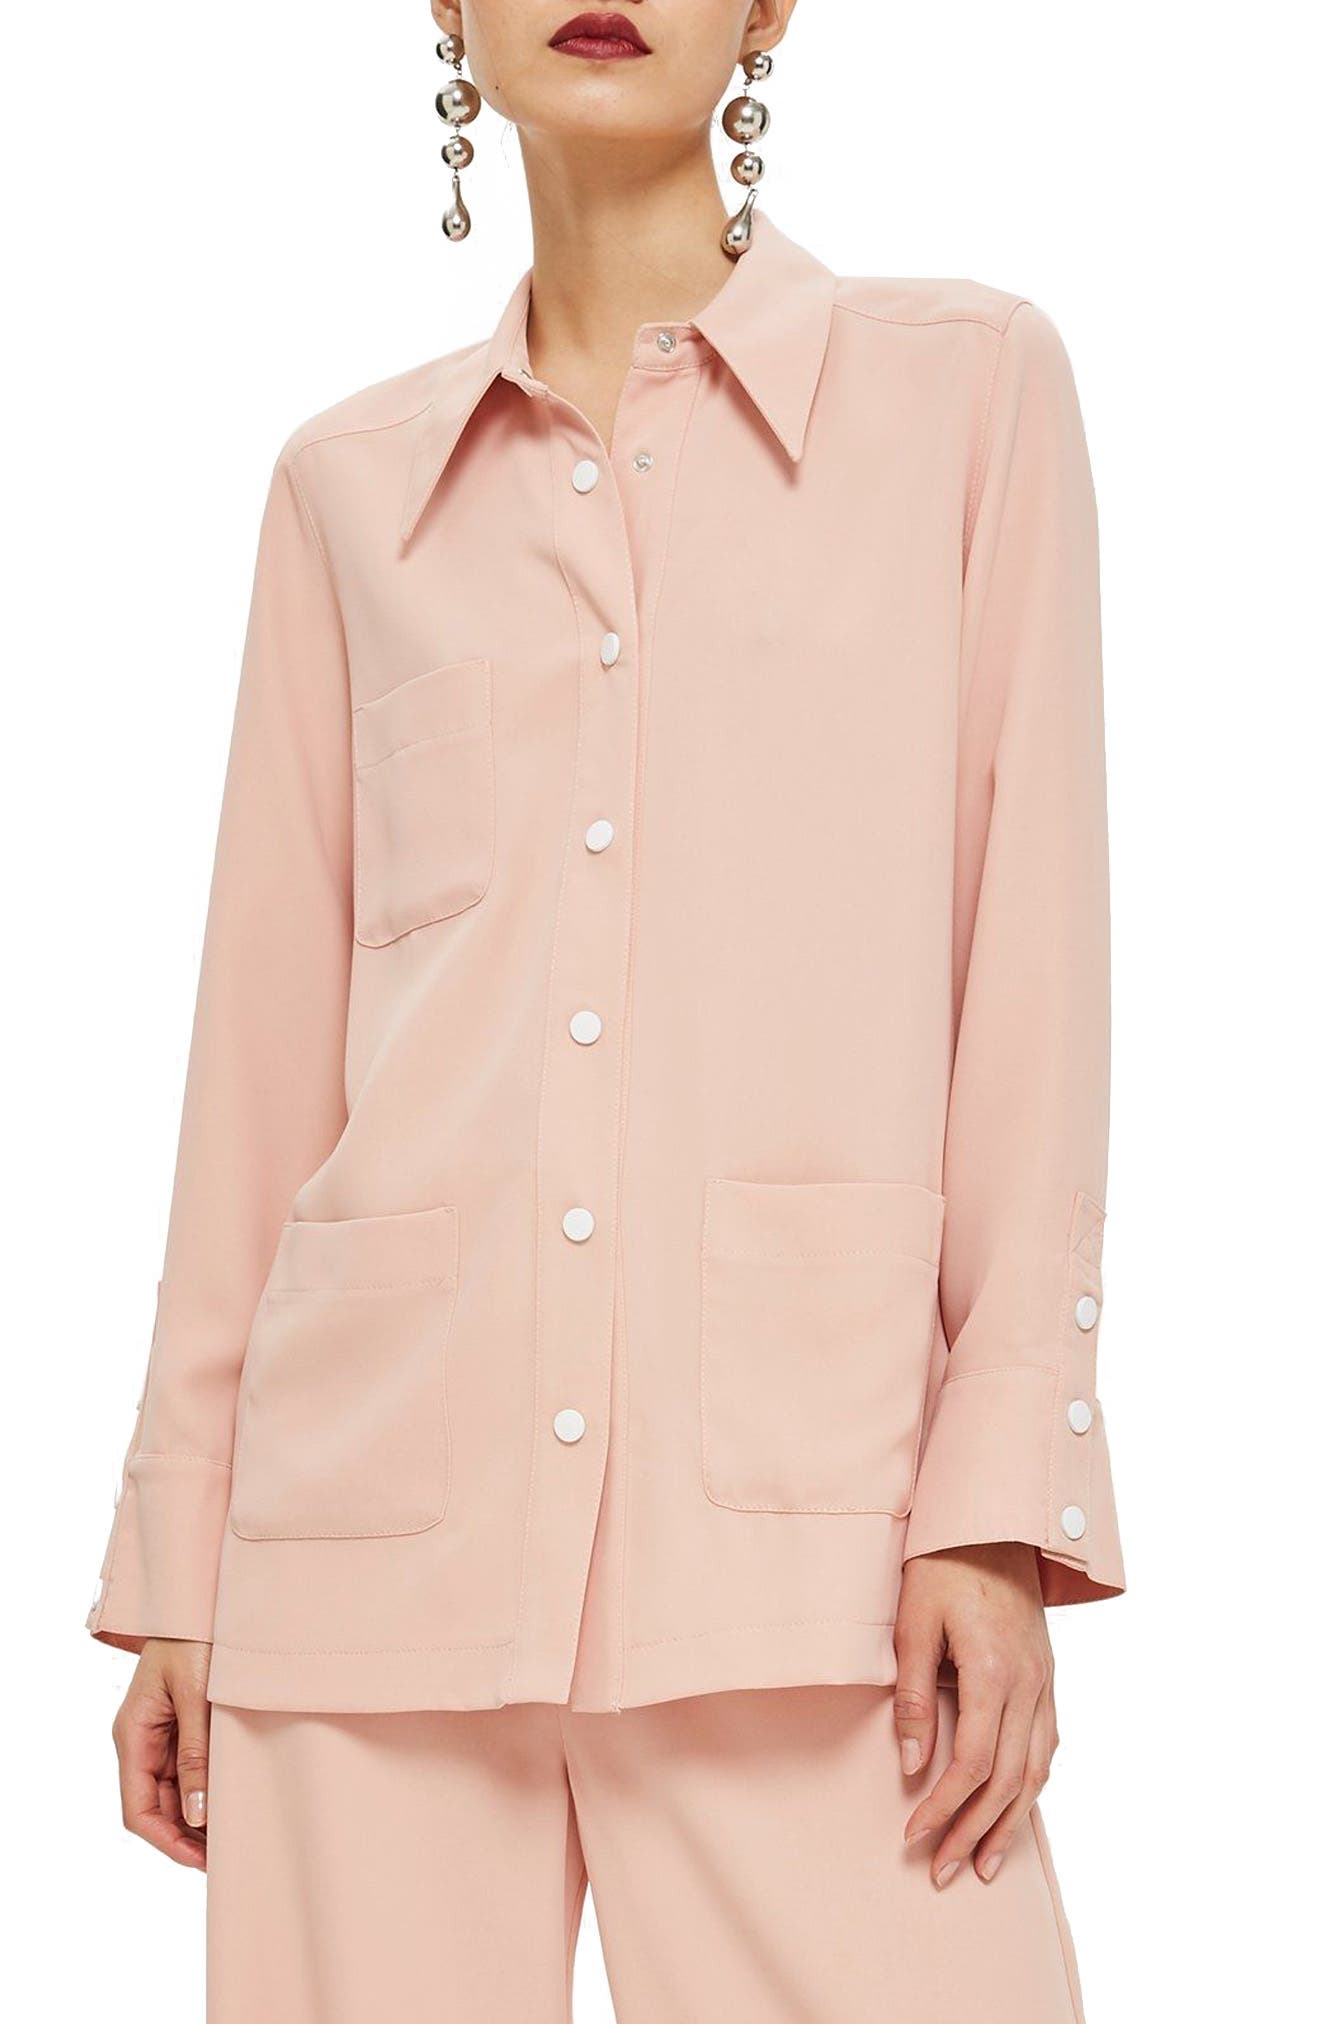 TOPSHOP, Popper Shirt, Main thumbnail 1, color, 650